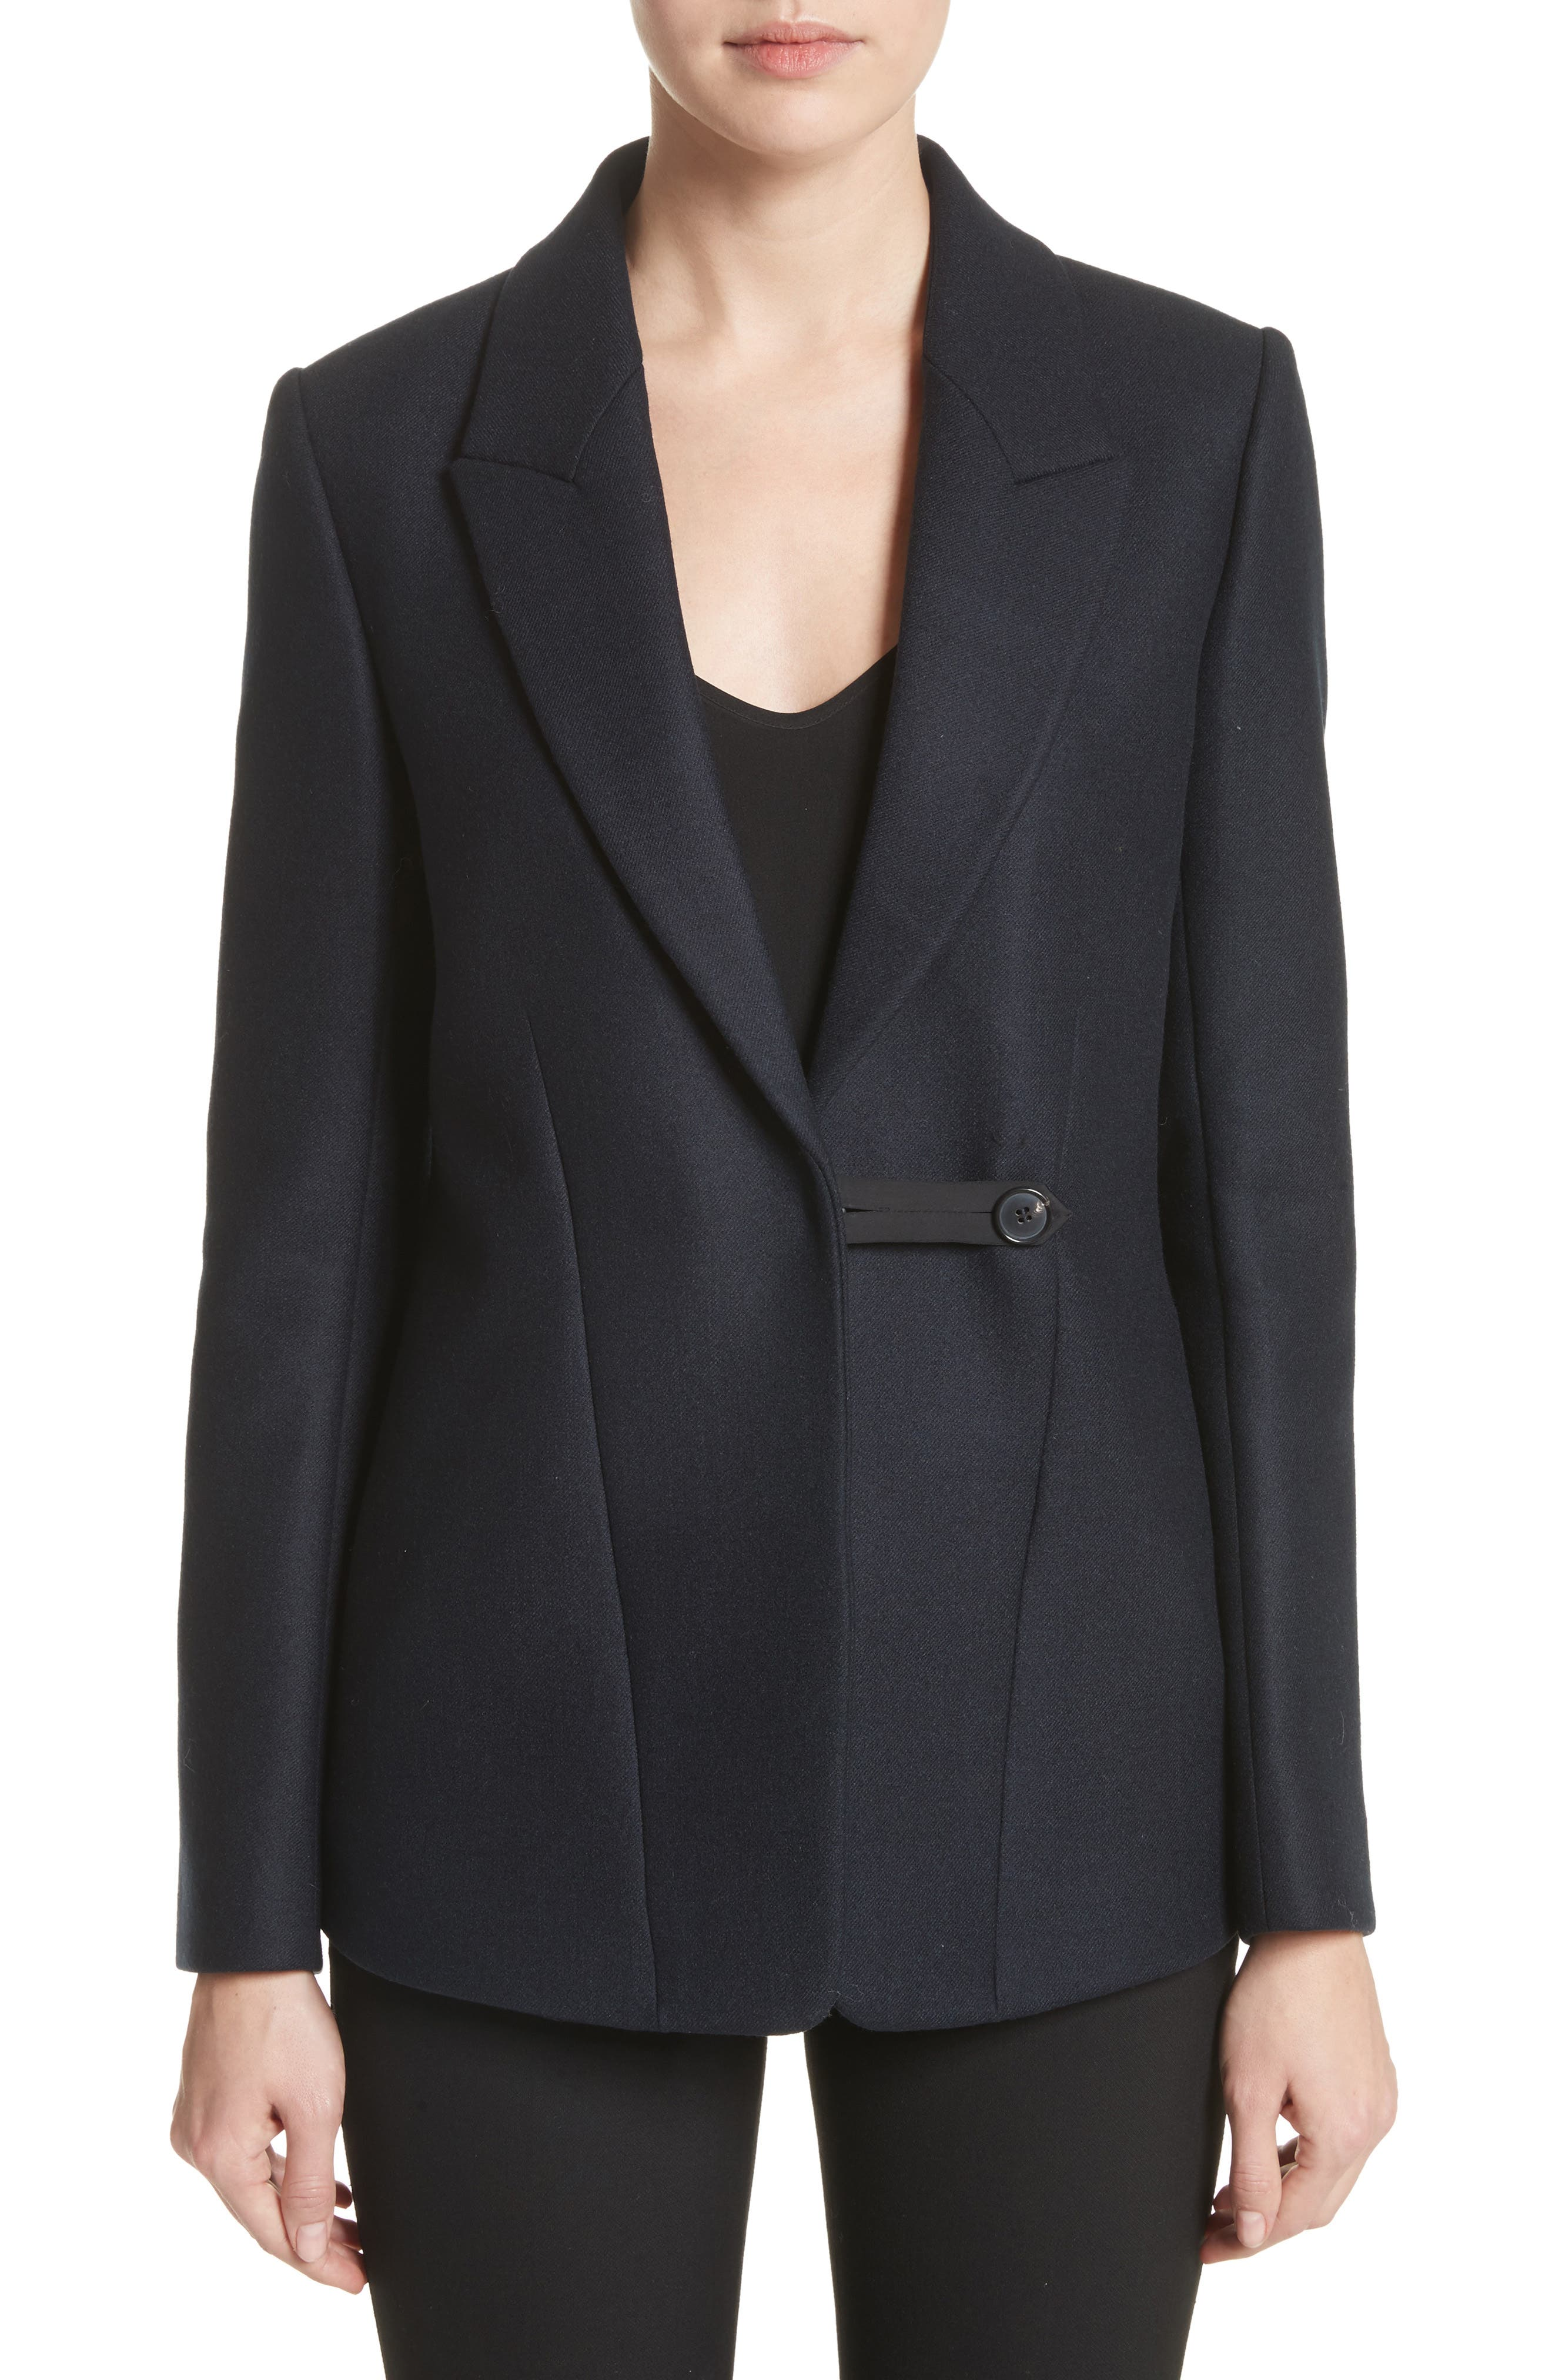 Victoria Beckham Fluid Back Double Breasted Jacket